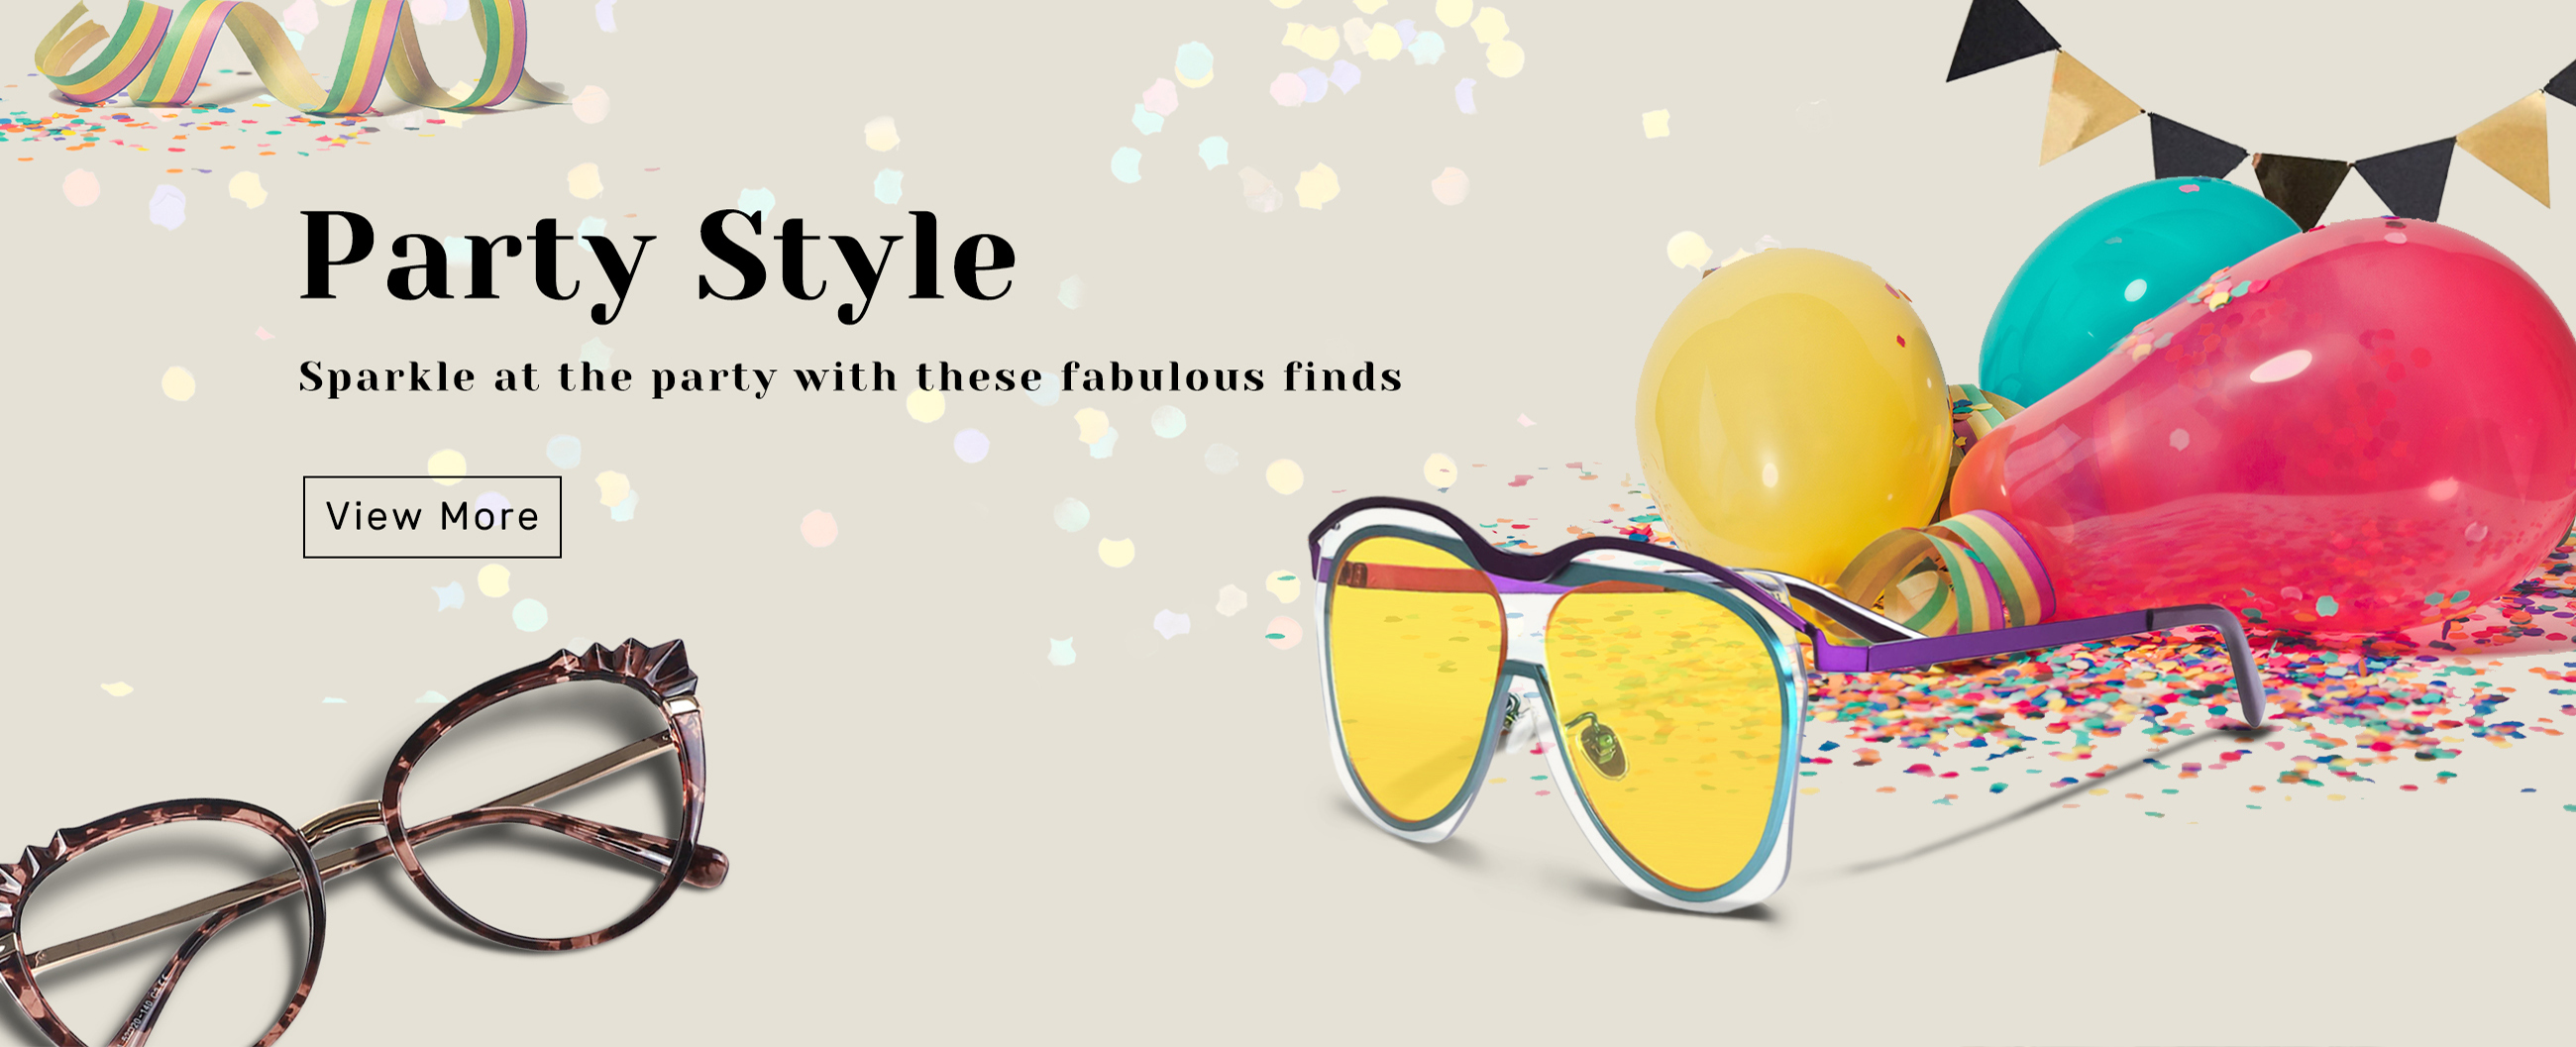 Eyeglass by party